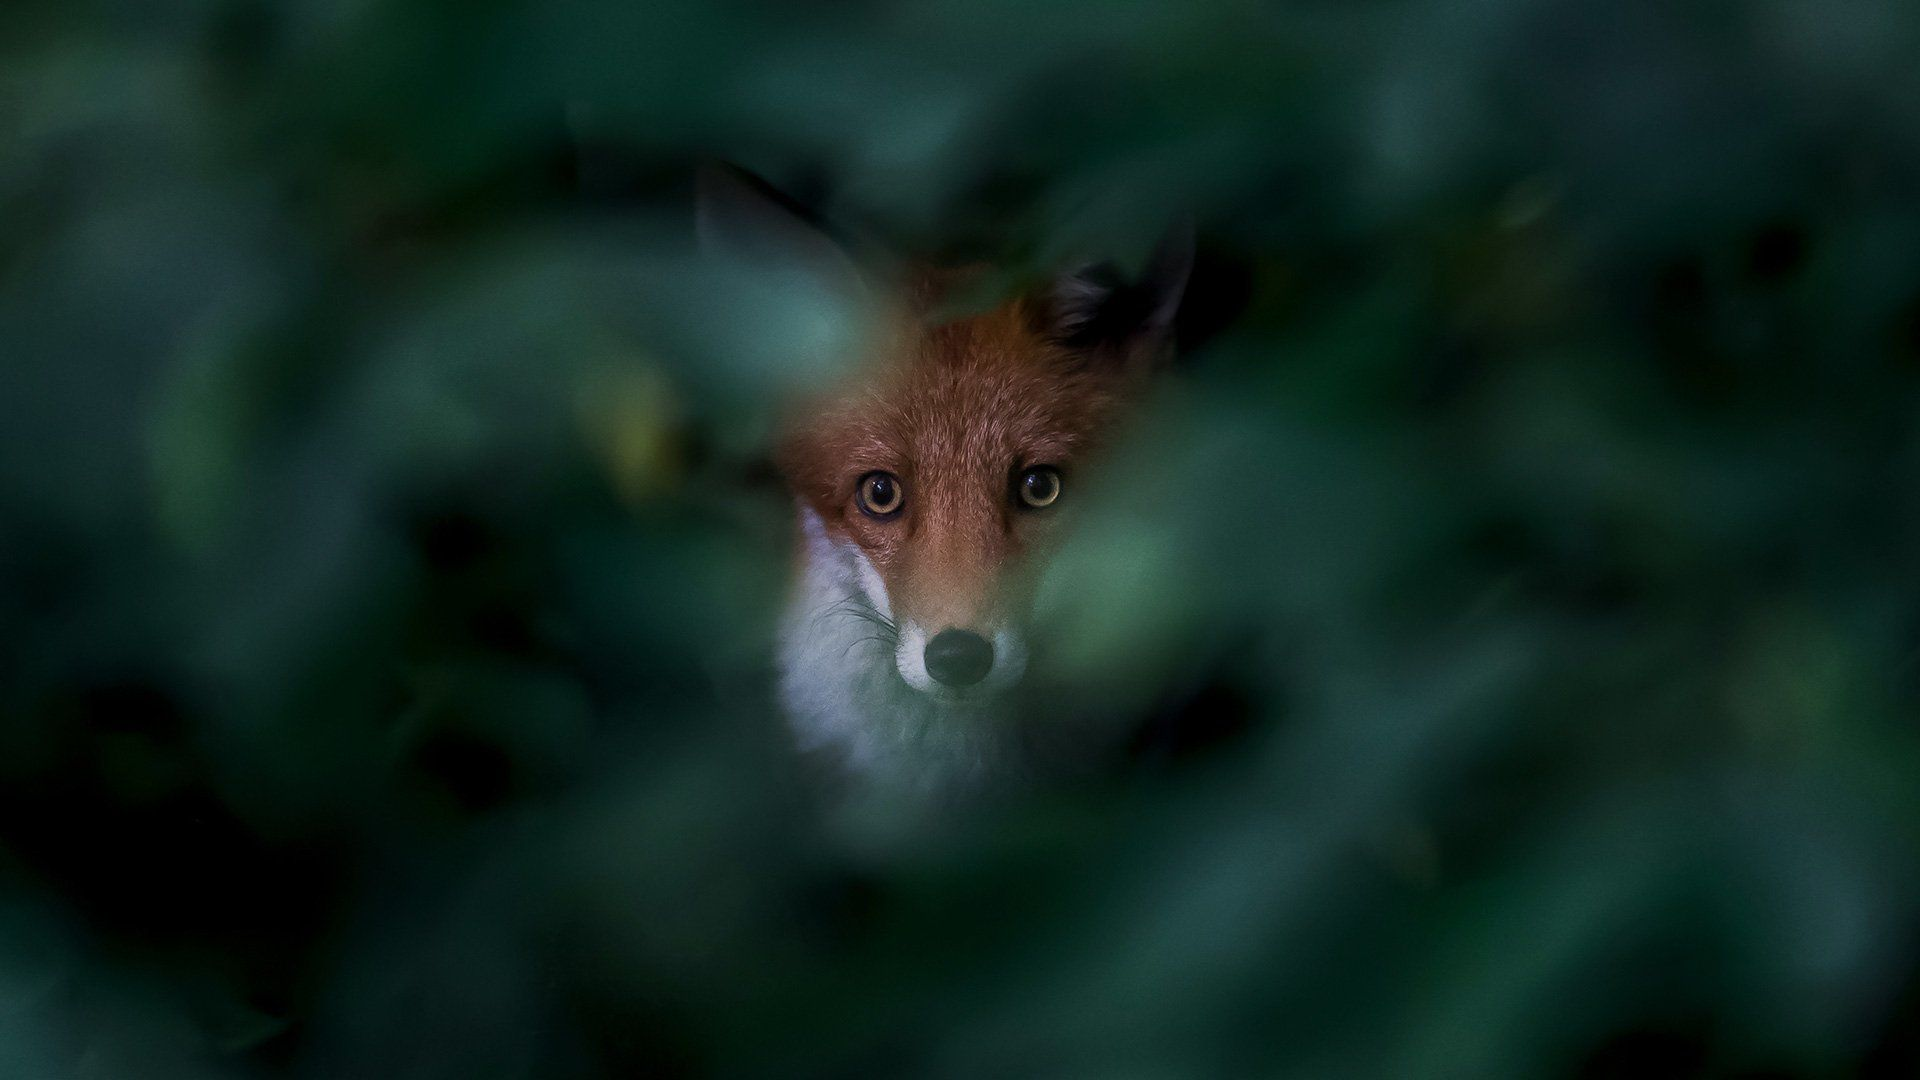 Ossi Saarinen's urban nature photography story: a fox stares at us through a gap in a bush, which is out of focus.